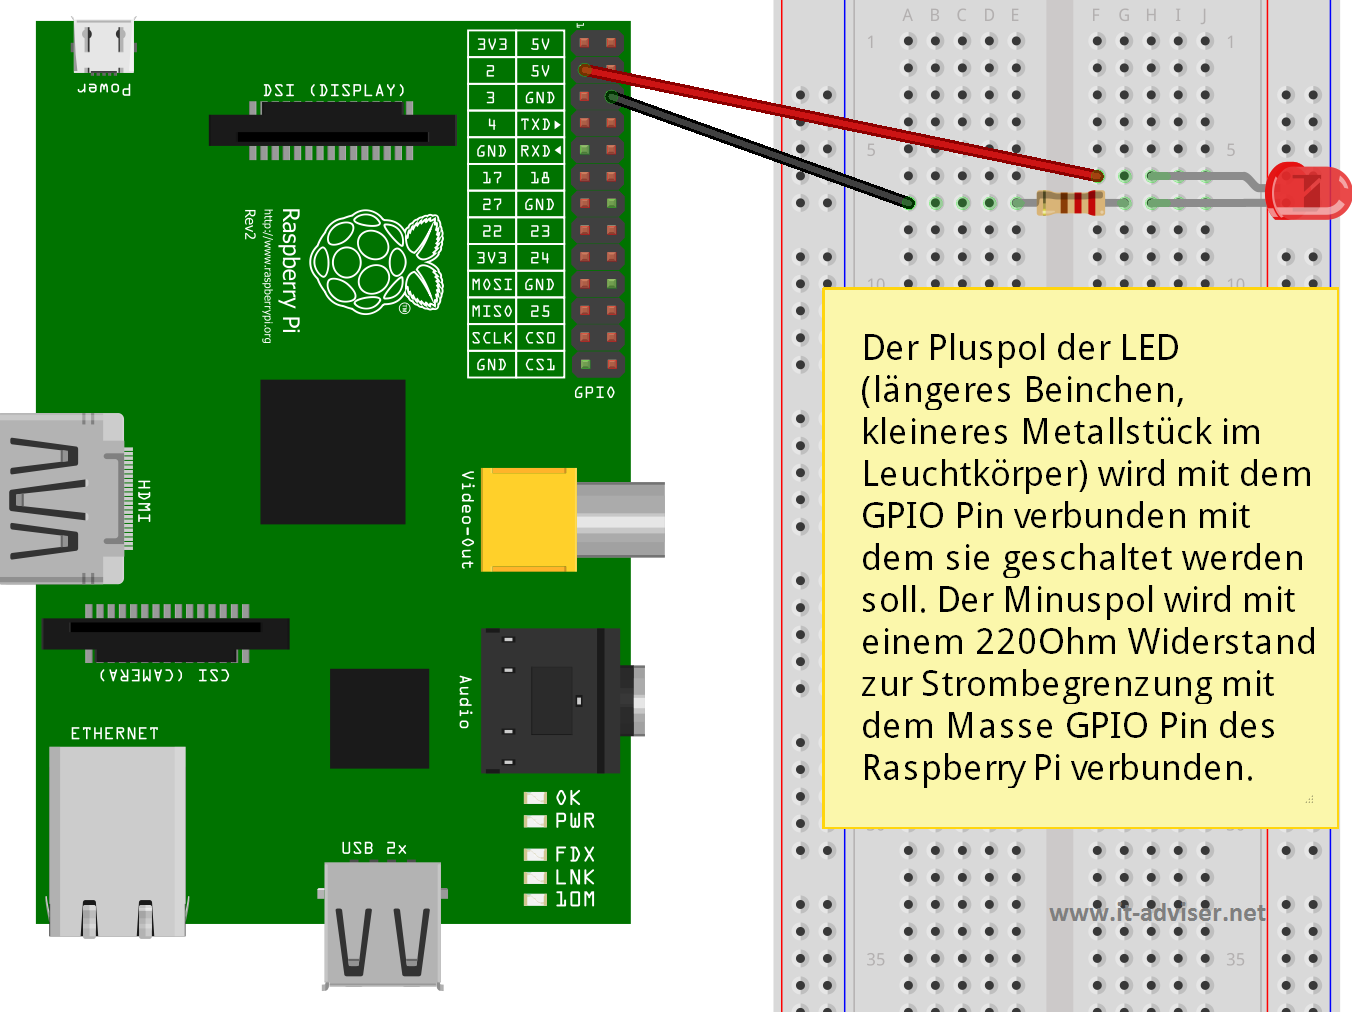 raspberry pi gpio pins schalten it adviser rh it adviser net